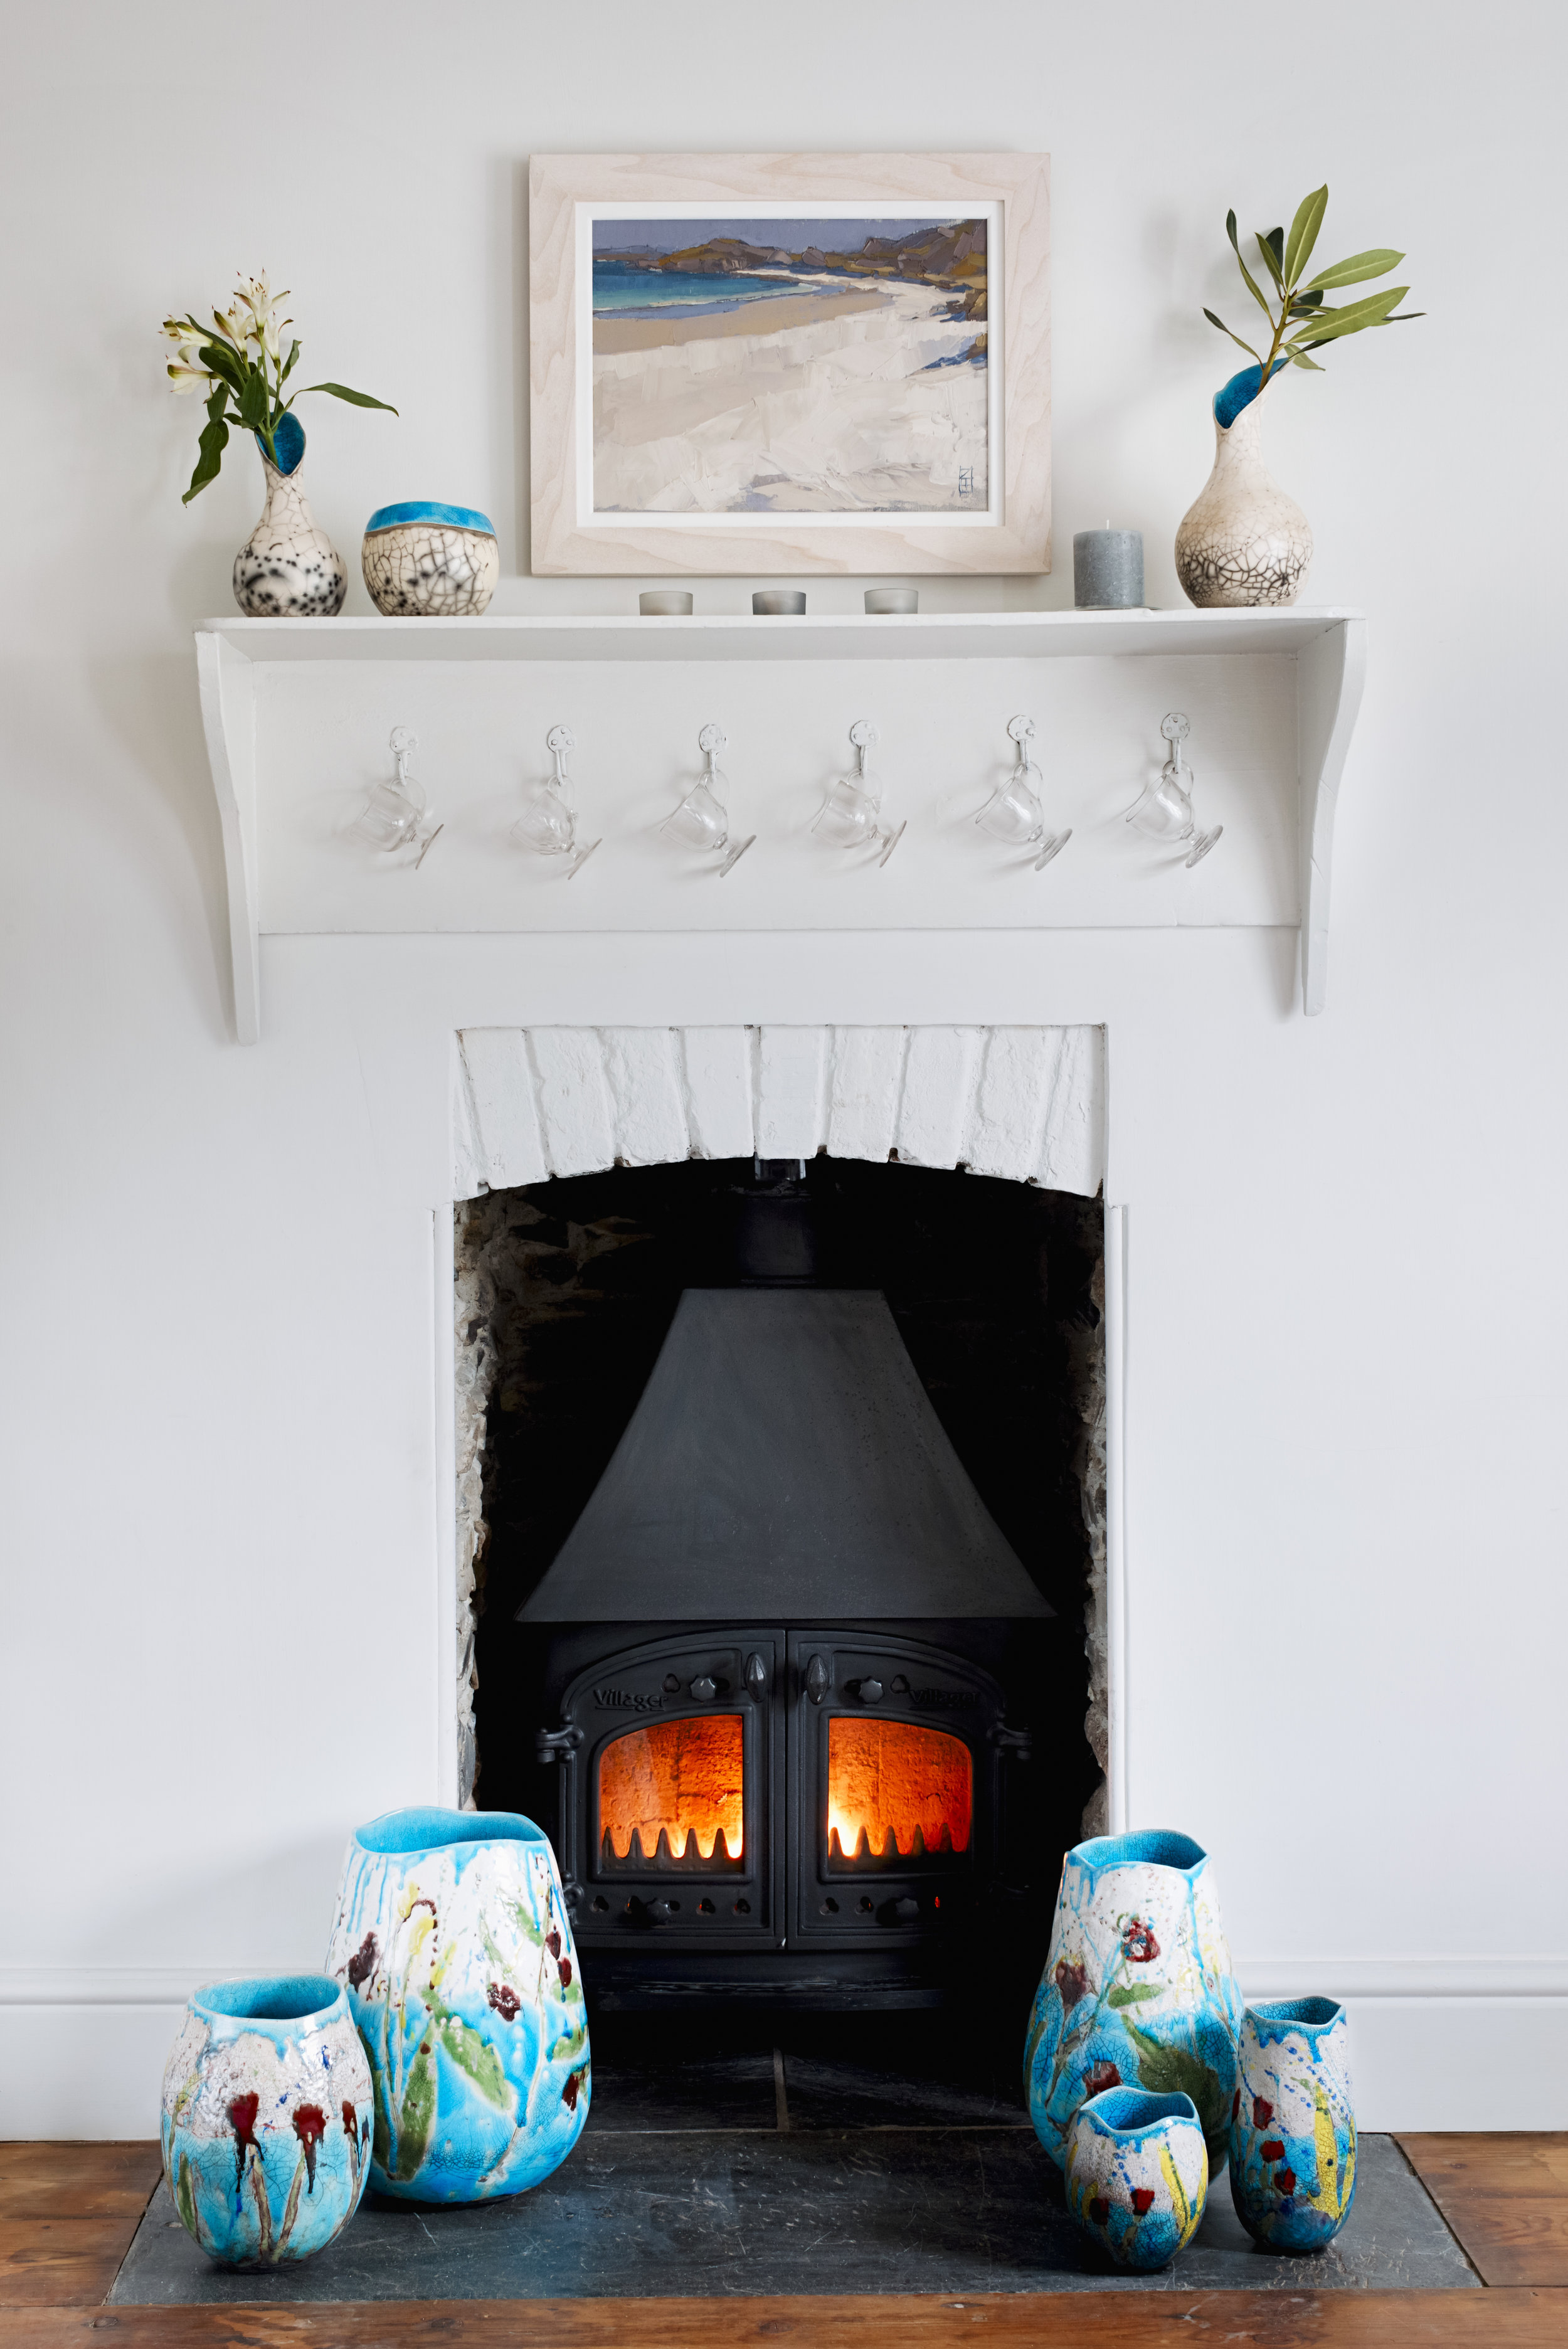 Pots by fireplace_Lucktaylor Ceramics_ Photo credit: Anya Rice.jpg